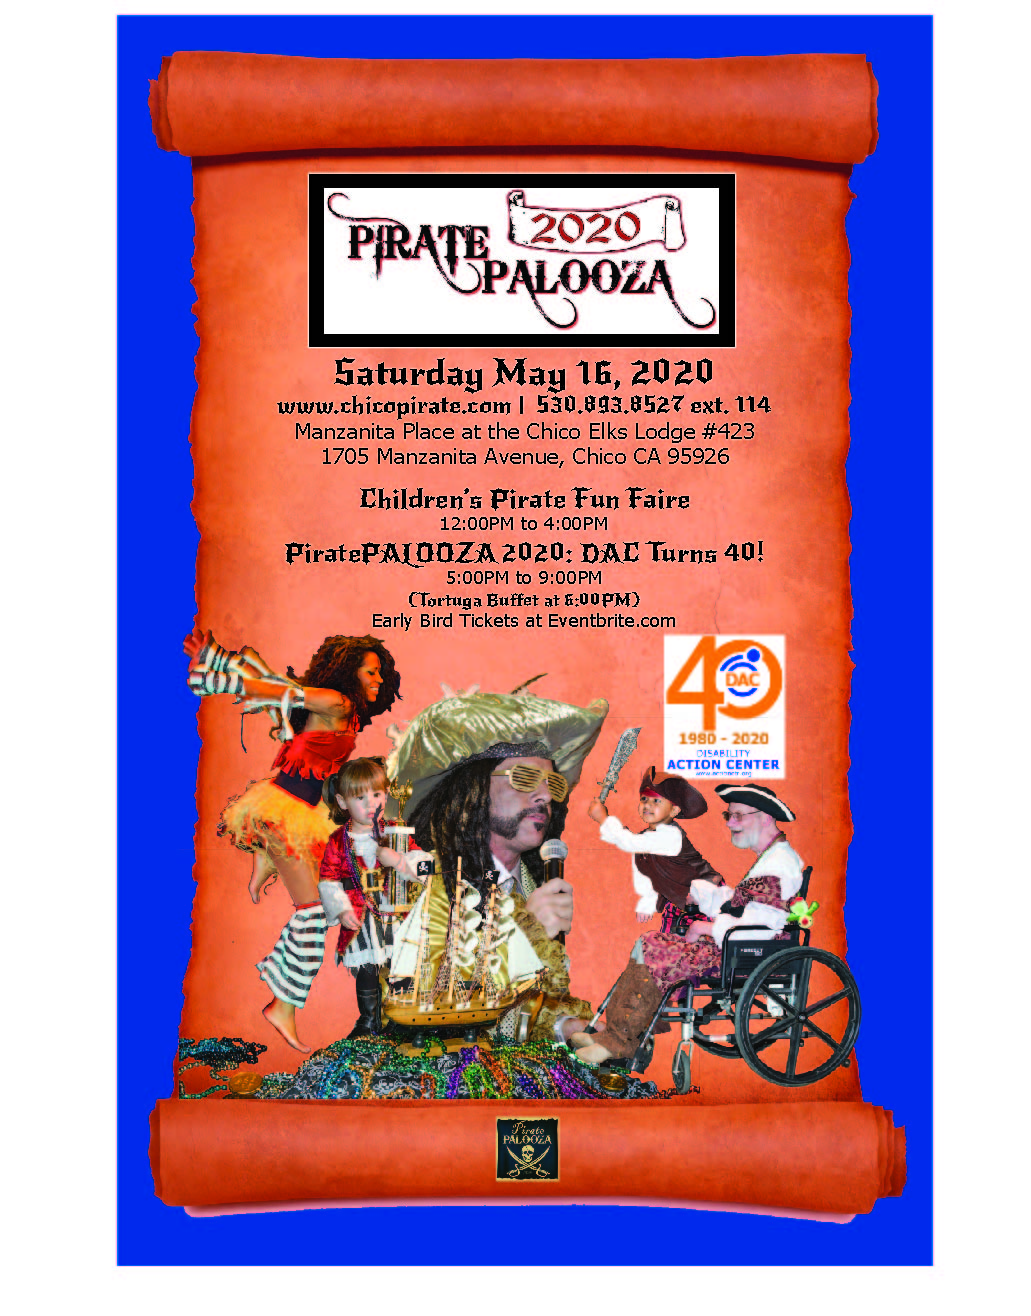 PiratePALOOZA 2020 Event Poster